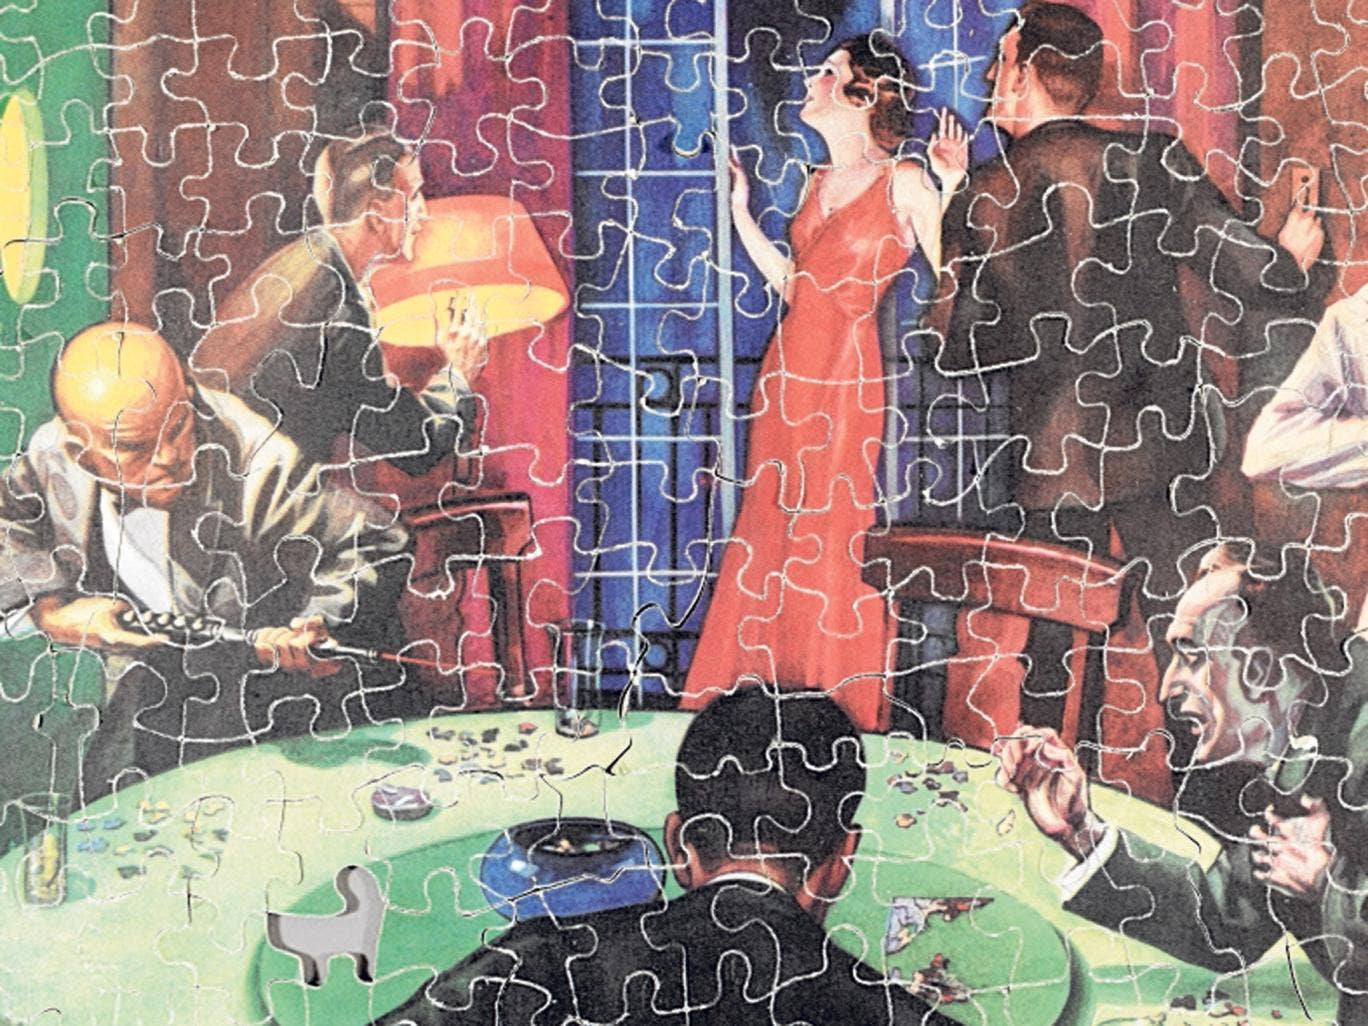 Thrilled to pieces: 'The Jigsaw Puzzle Murder' by Walter Eberhardt